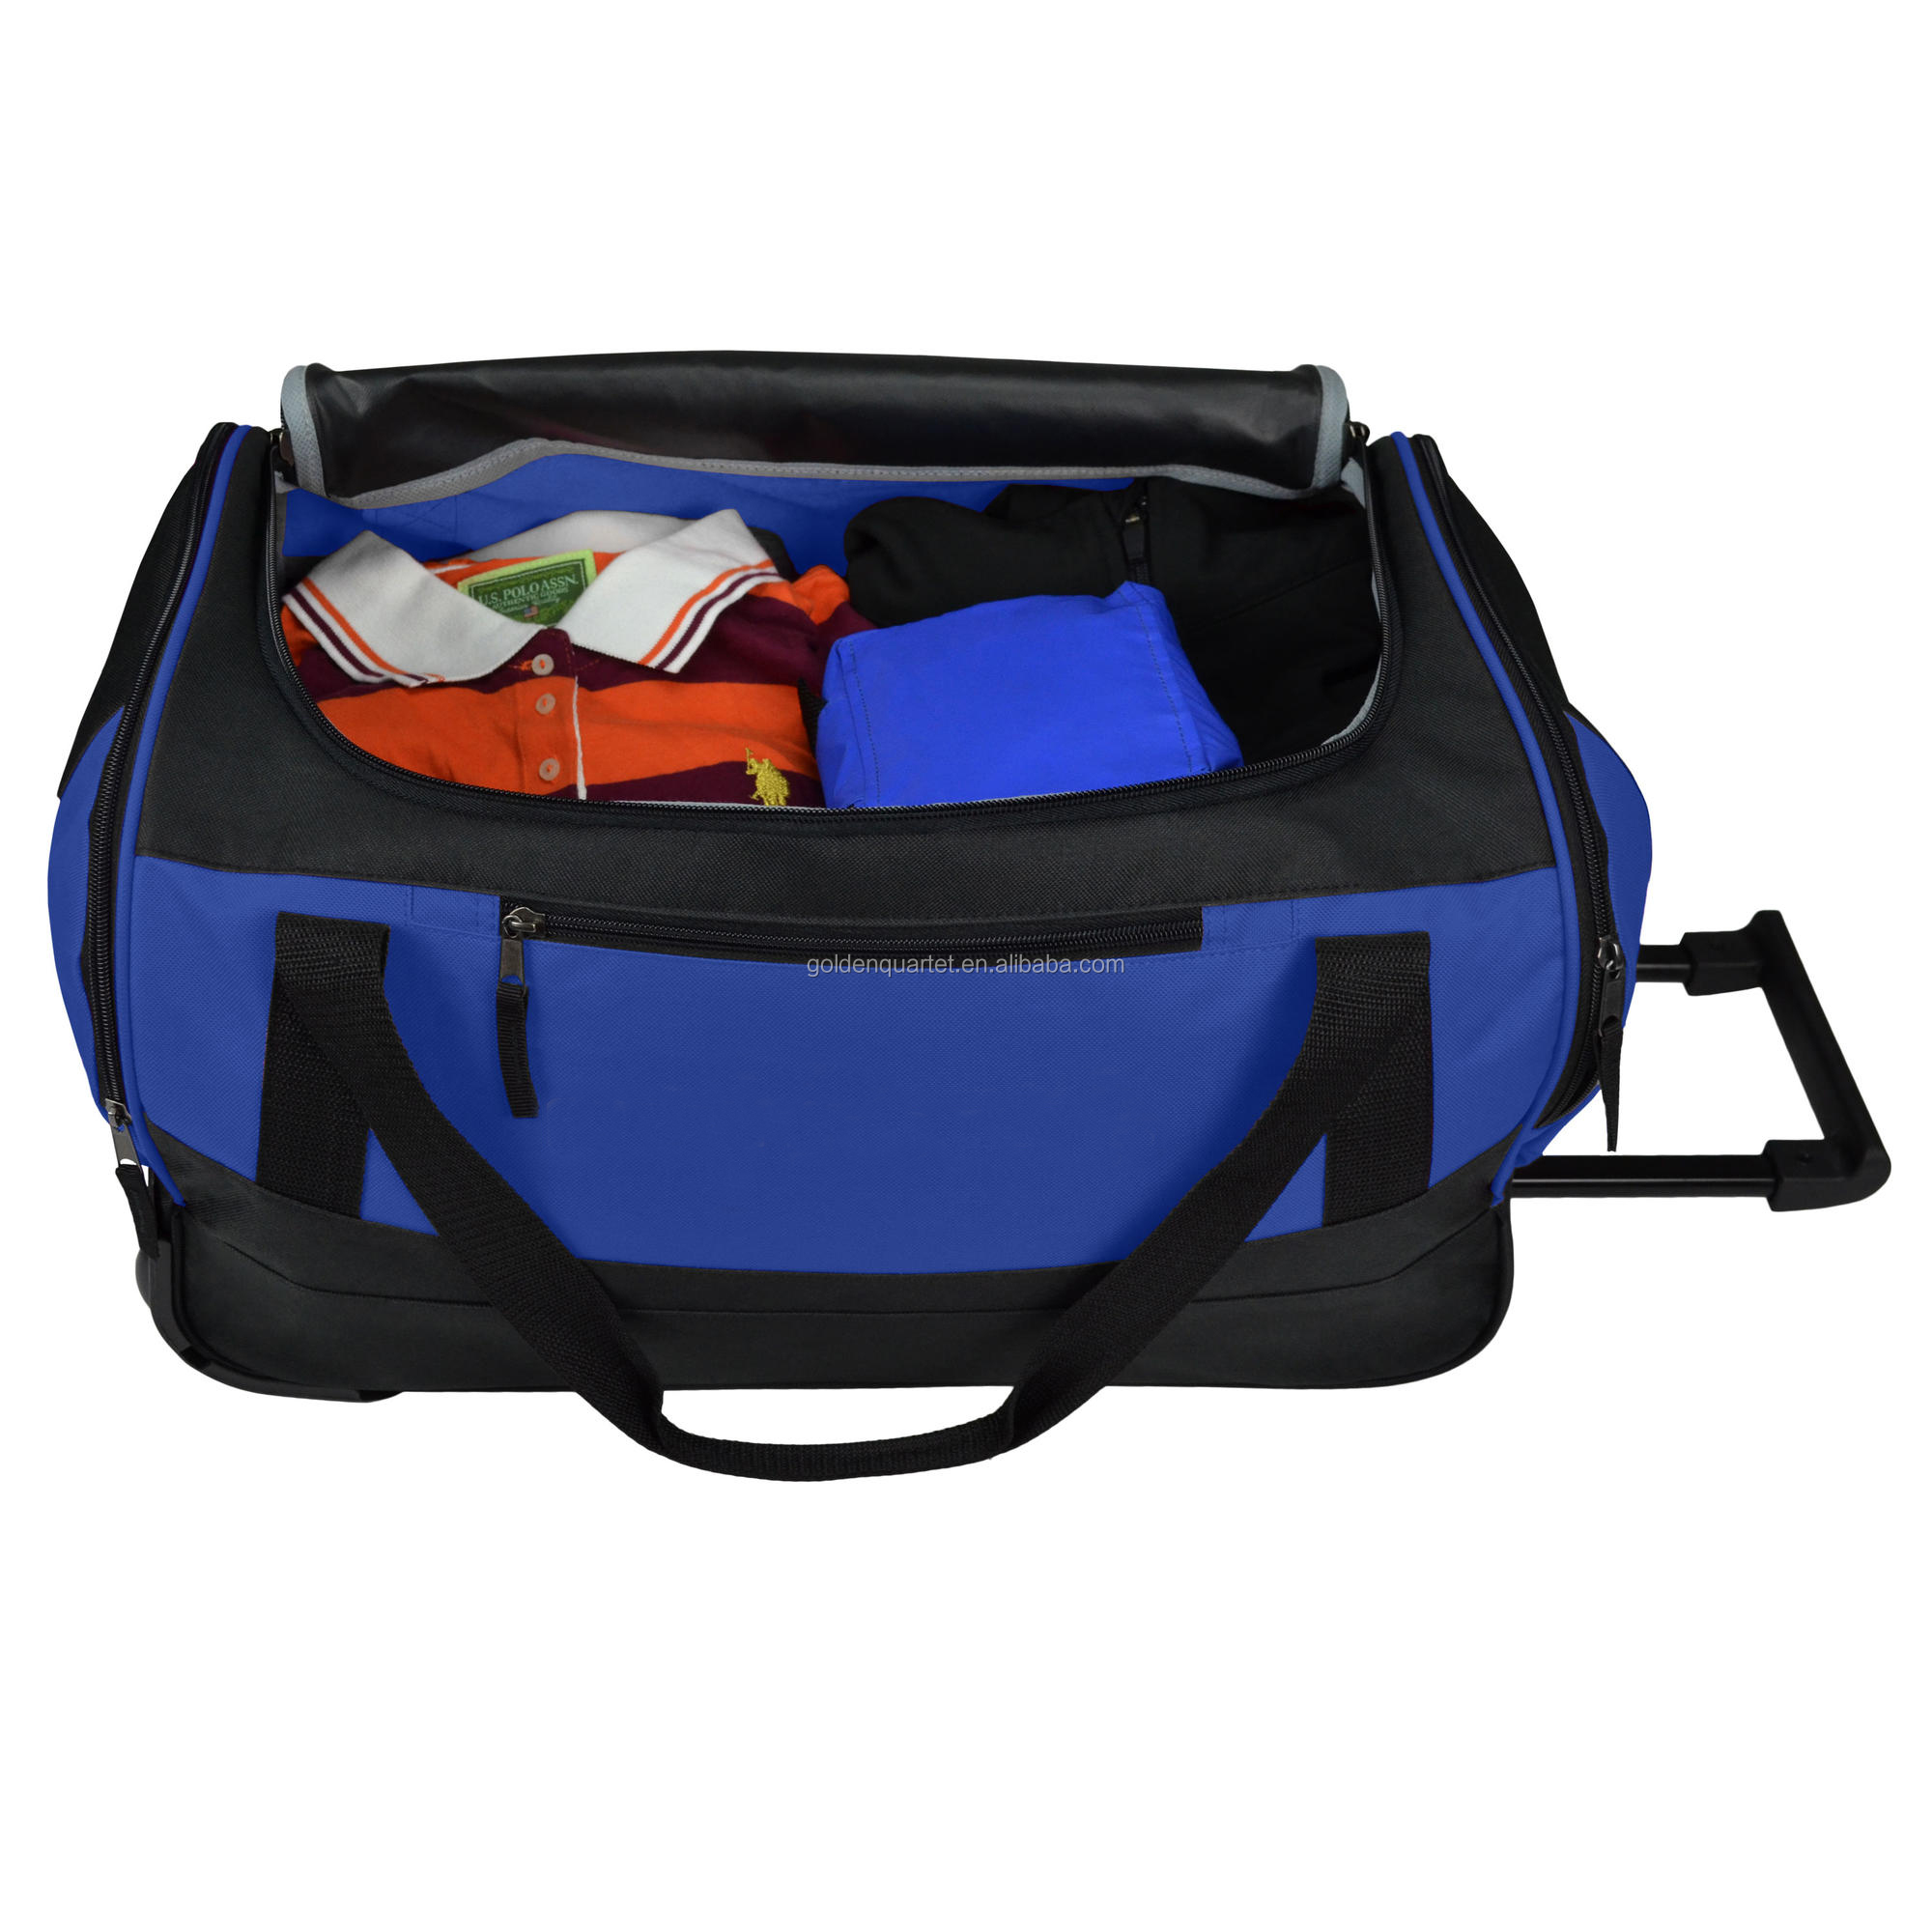 Business Rolling Travel Duffel Bag with Two Wheels wheeled market trolley bag